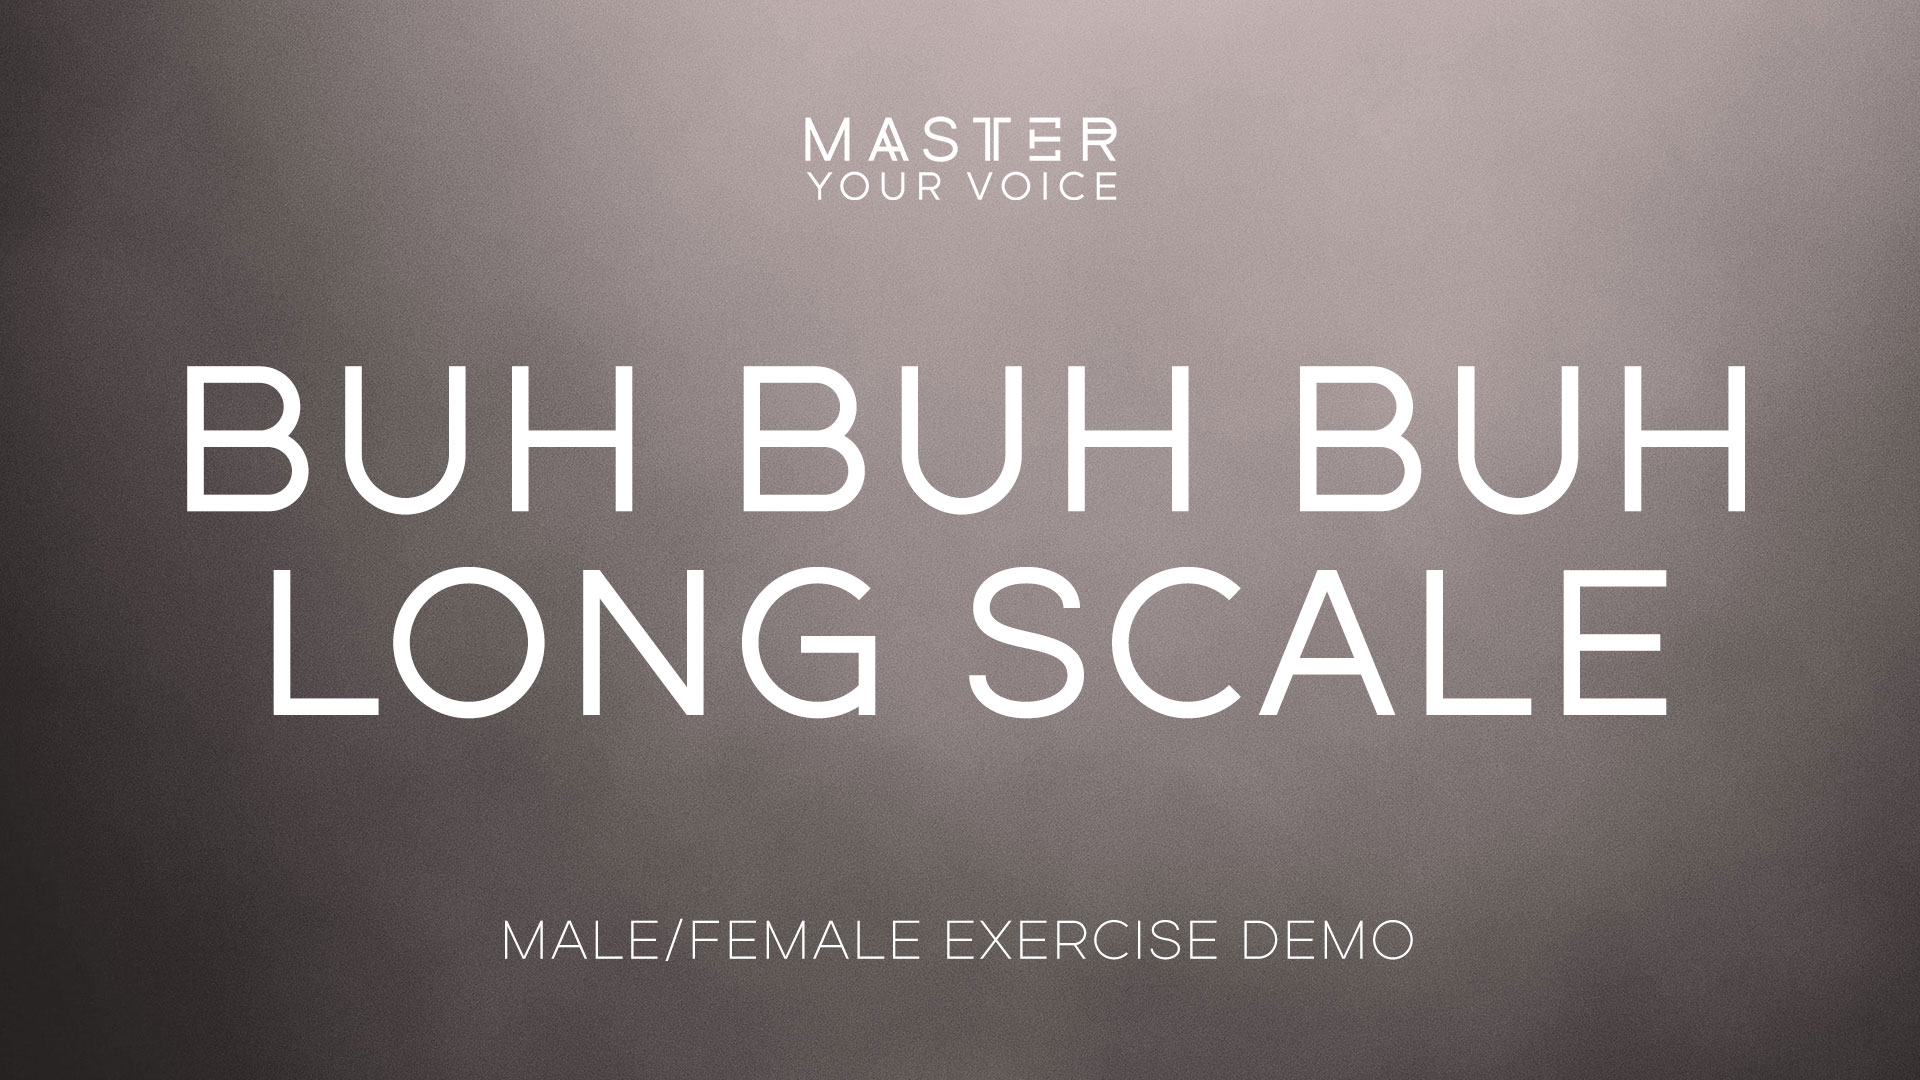 Buh Buh Buh Long Scale Exercise Demo